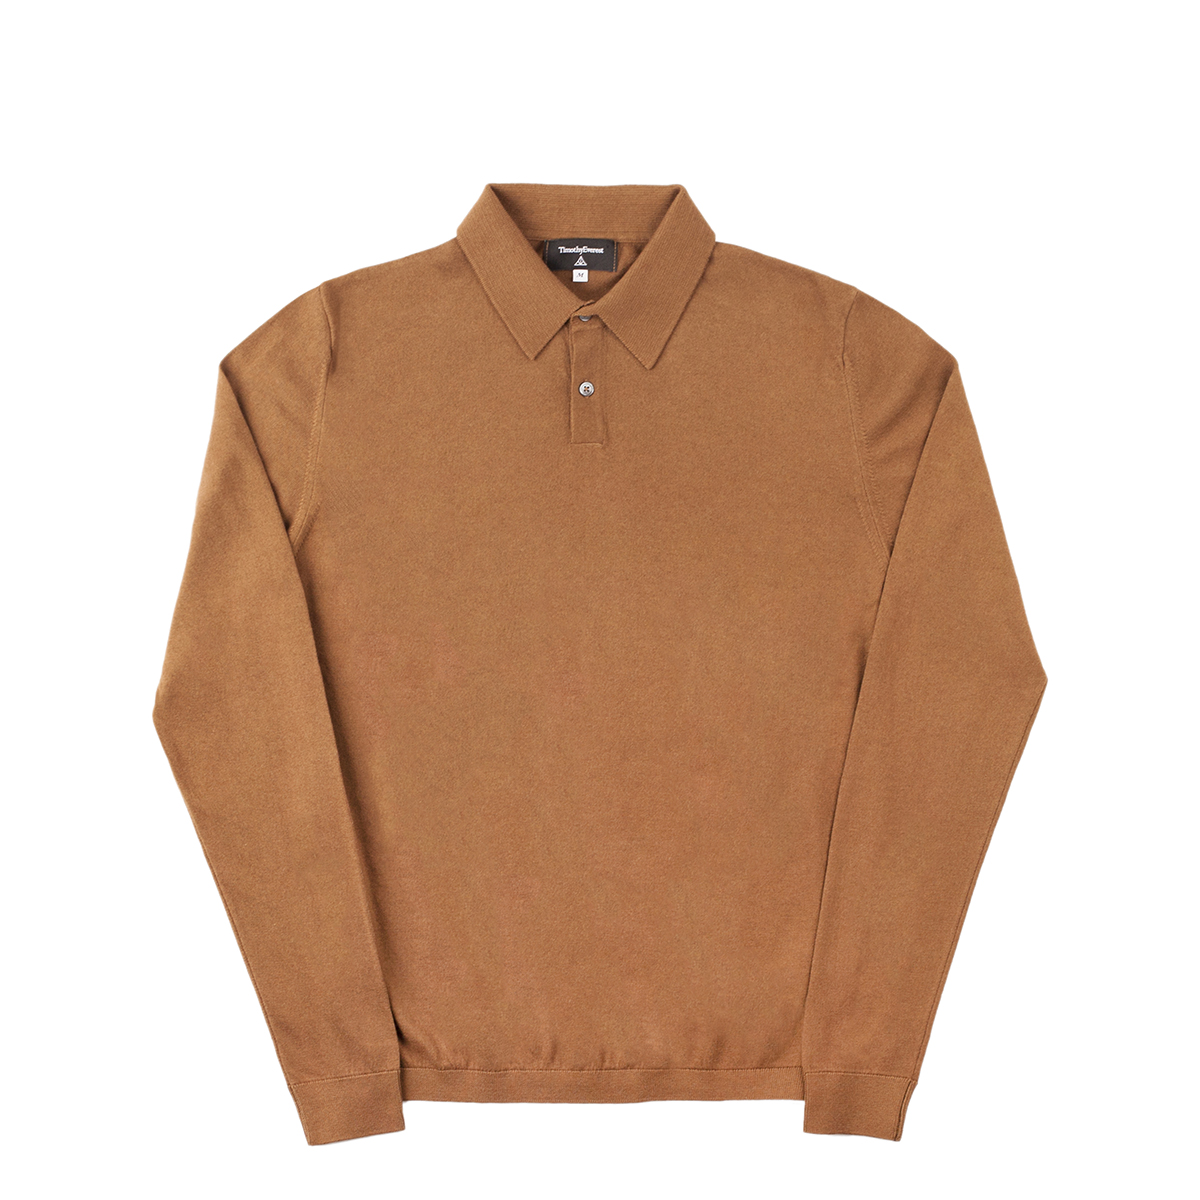 Timothy Everest Camel Lightweight Cotton/Cashmere Long Sleeve Polo